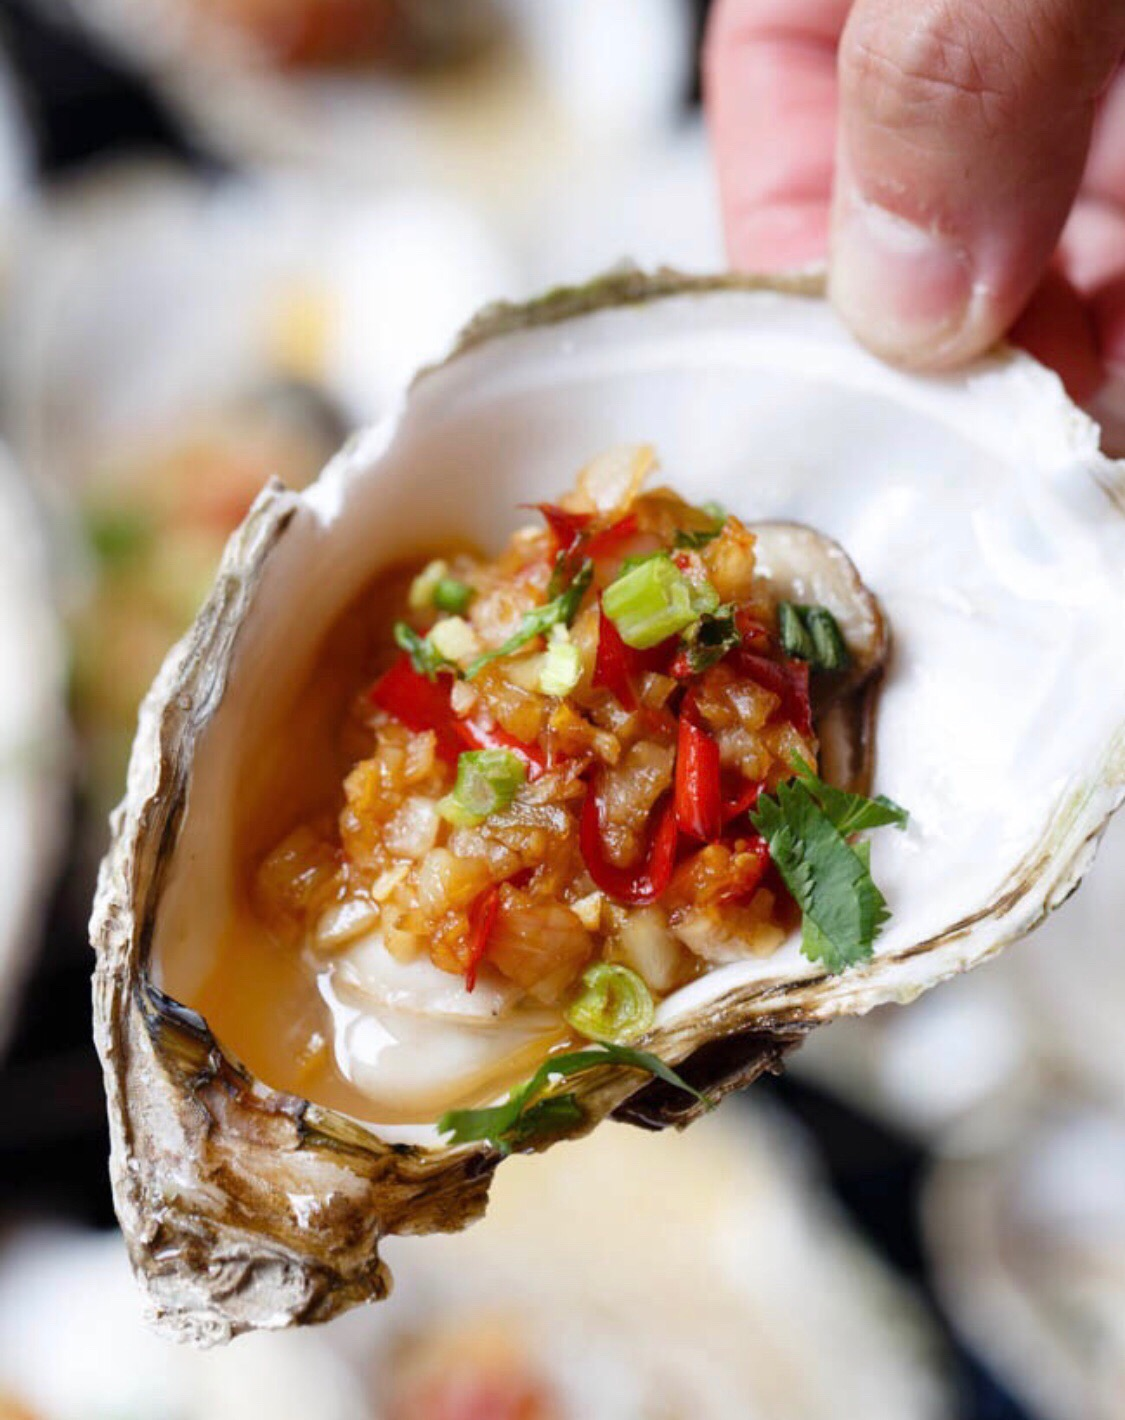 Oyster with Garlic Sauce